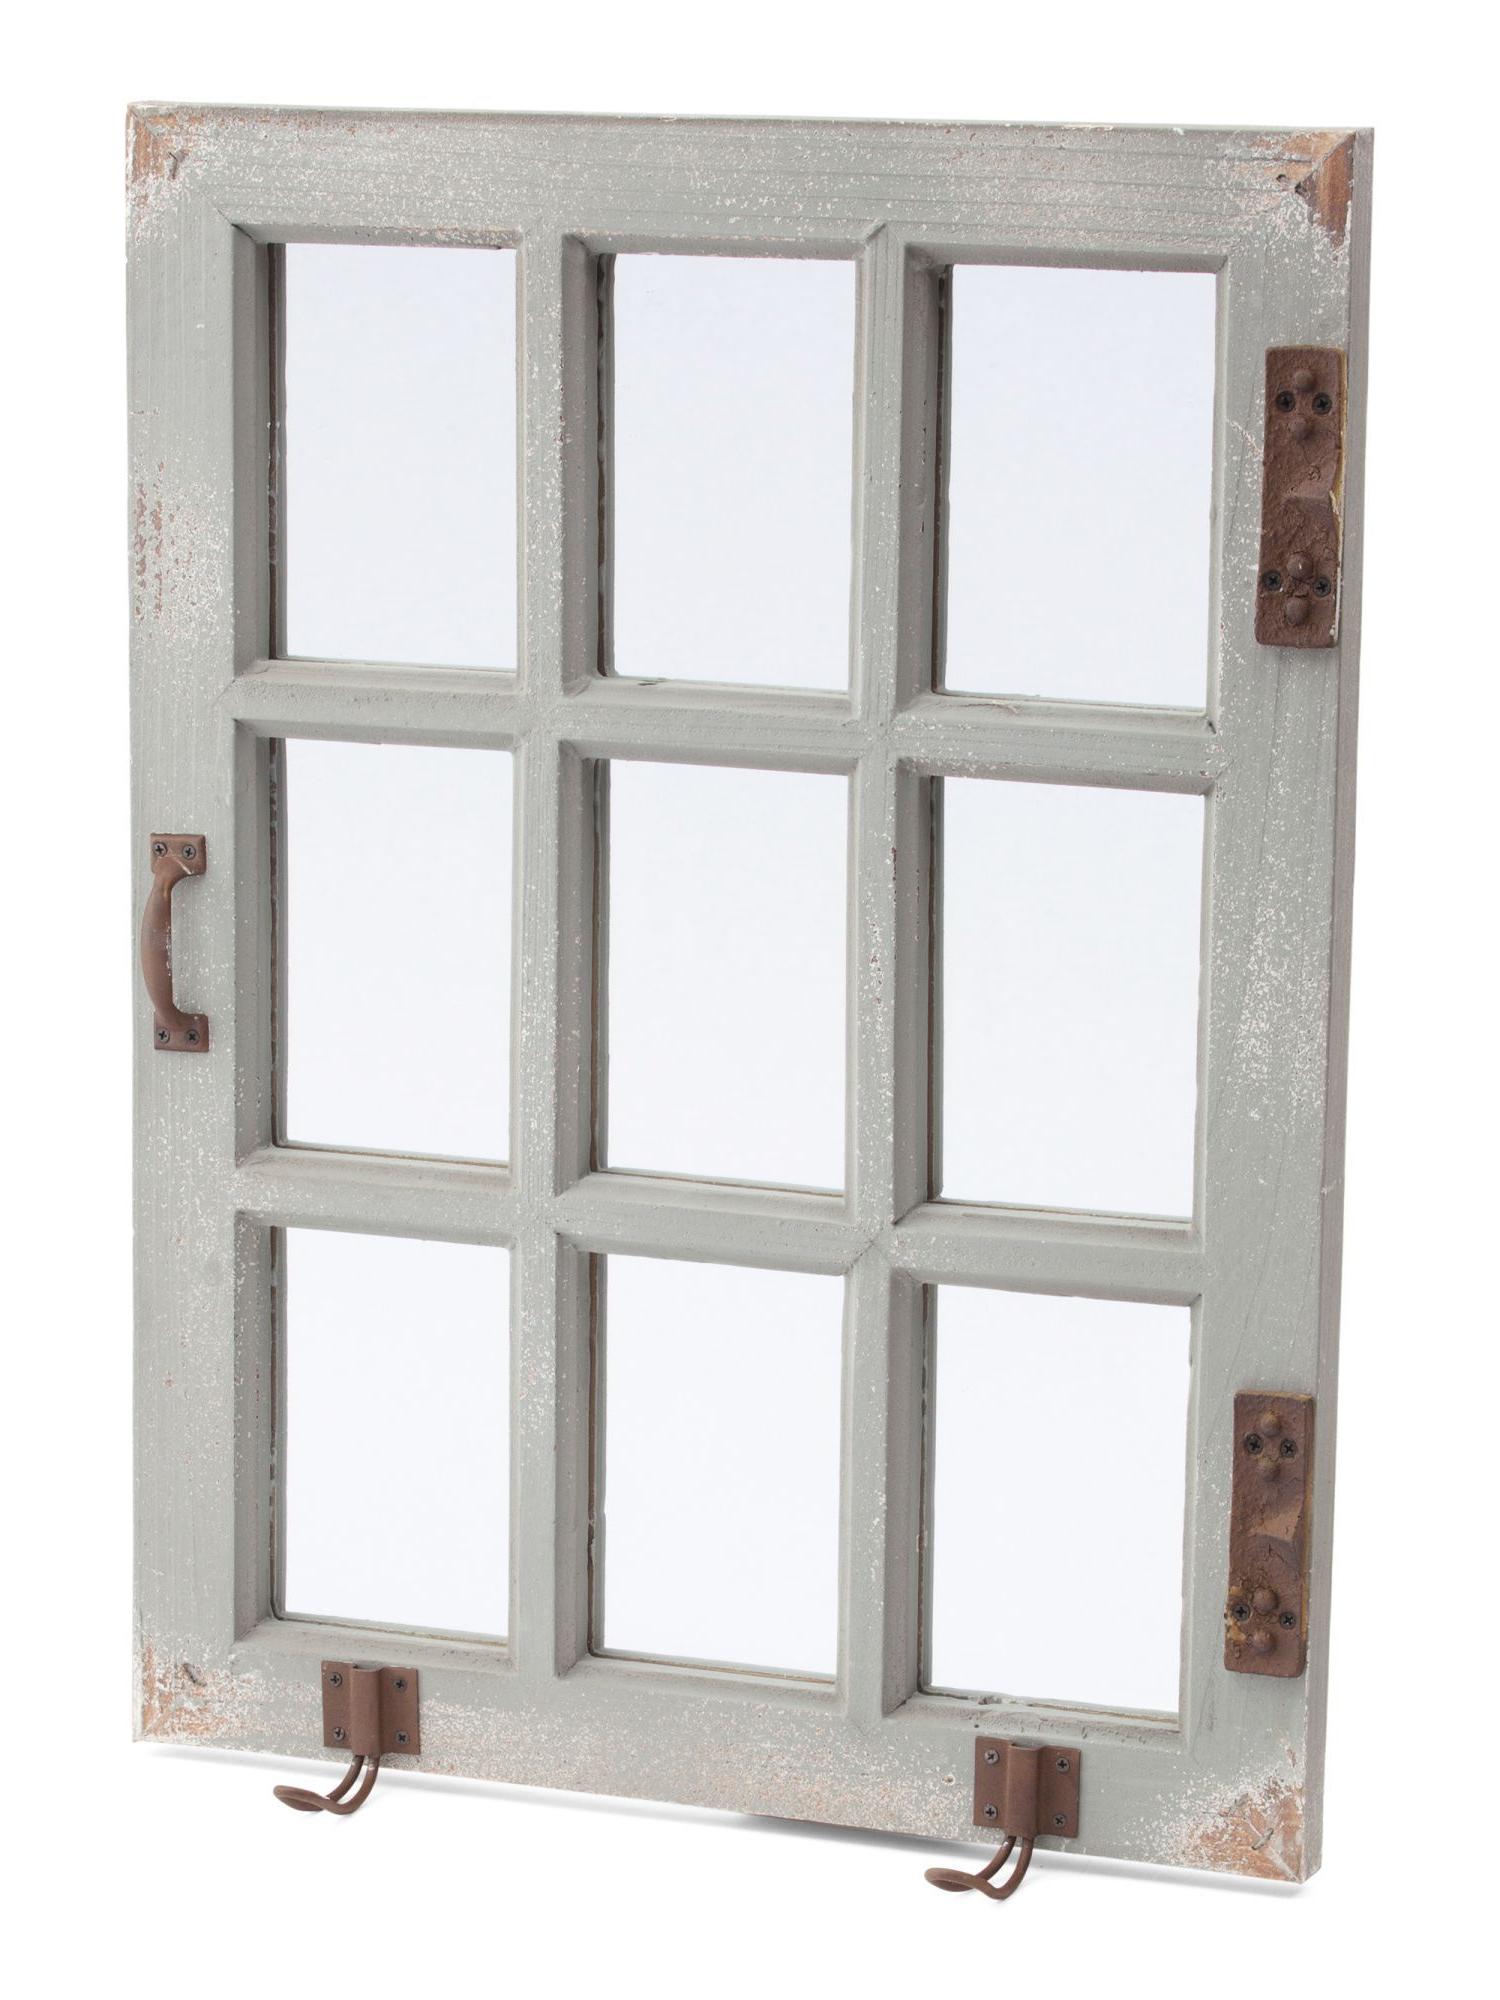 Mirror With Hooks, Window With Regard To 2 Piece Kissena Window Pane Accent Mirror Sets (View 14 of 20)